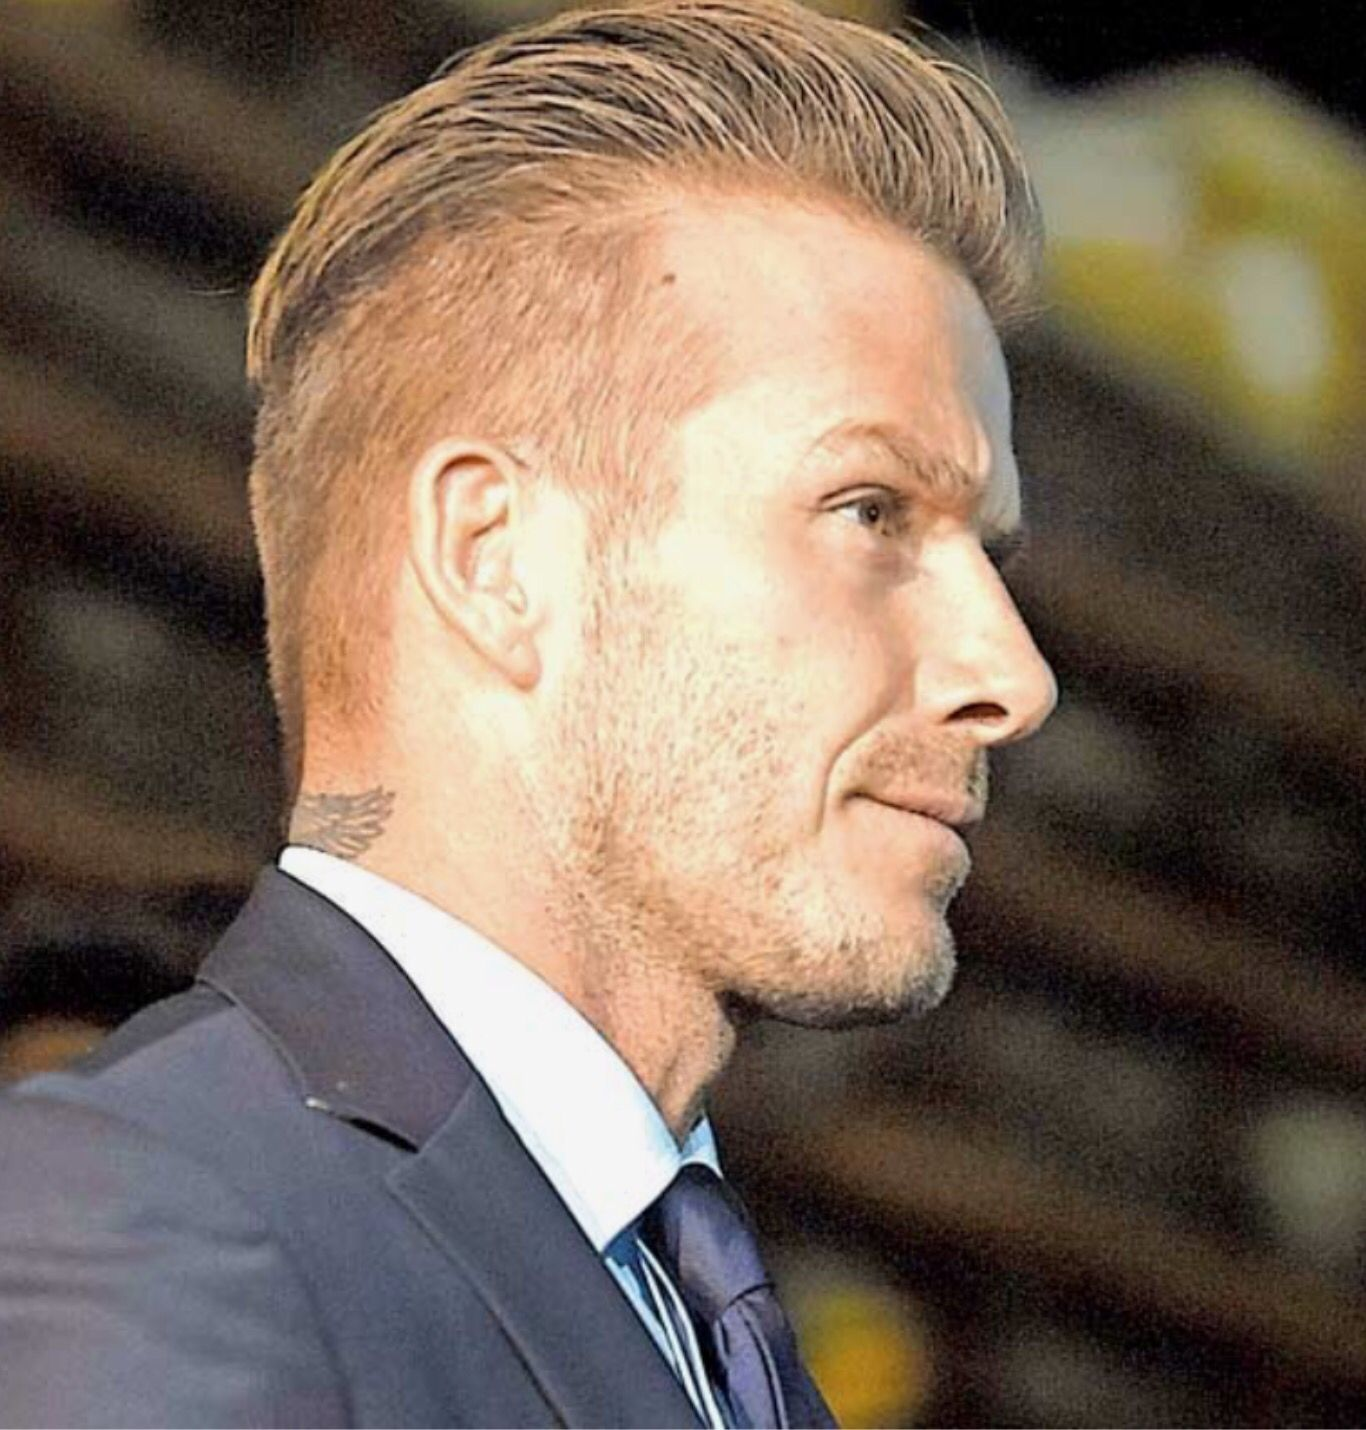 Undercut Hairstyle David Beckham David beckham and other